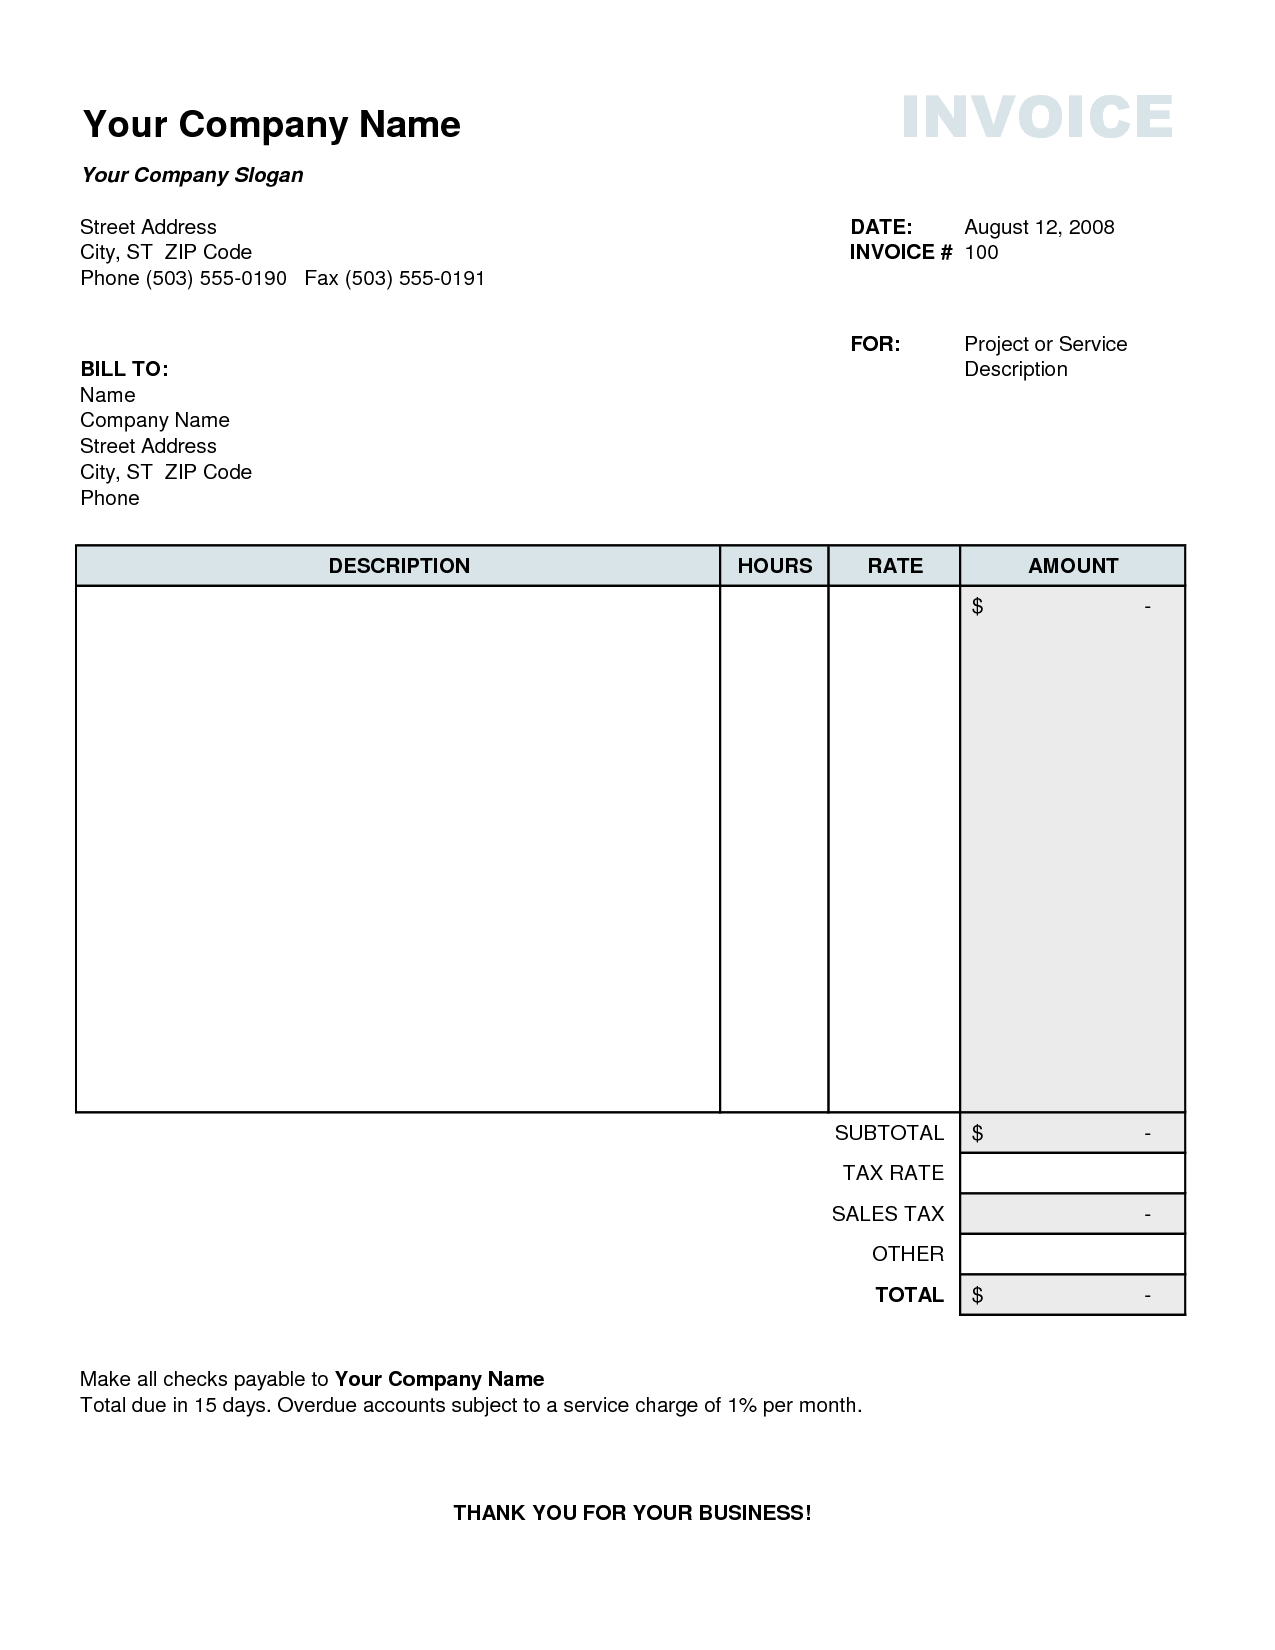 Invoice Template Excel Australia Kevincoynepagetk - How to make invoice in excel for service business